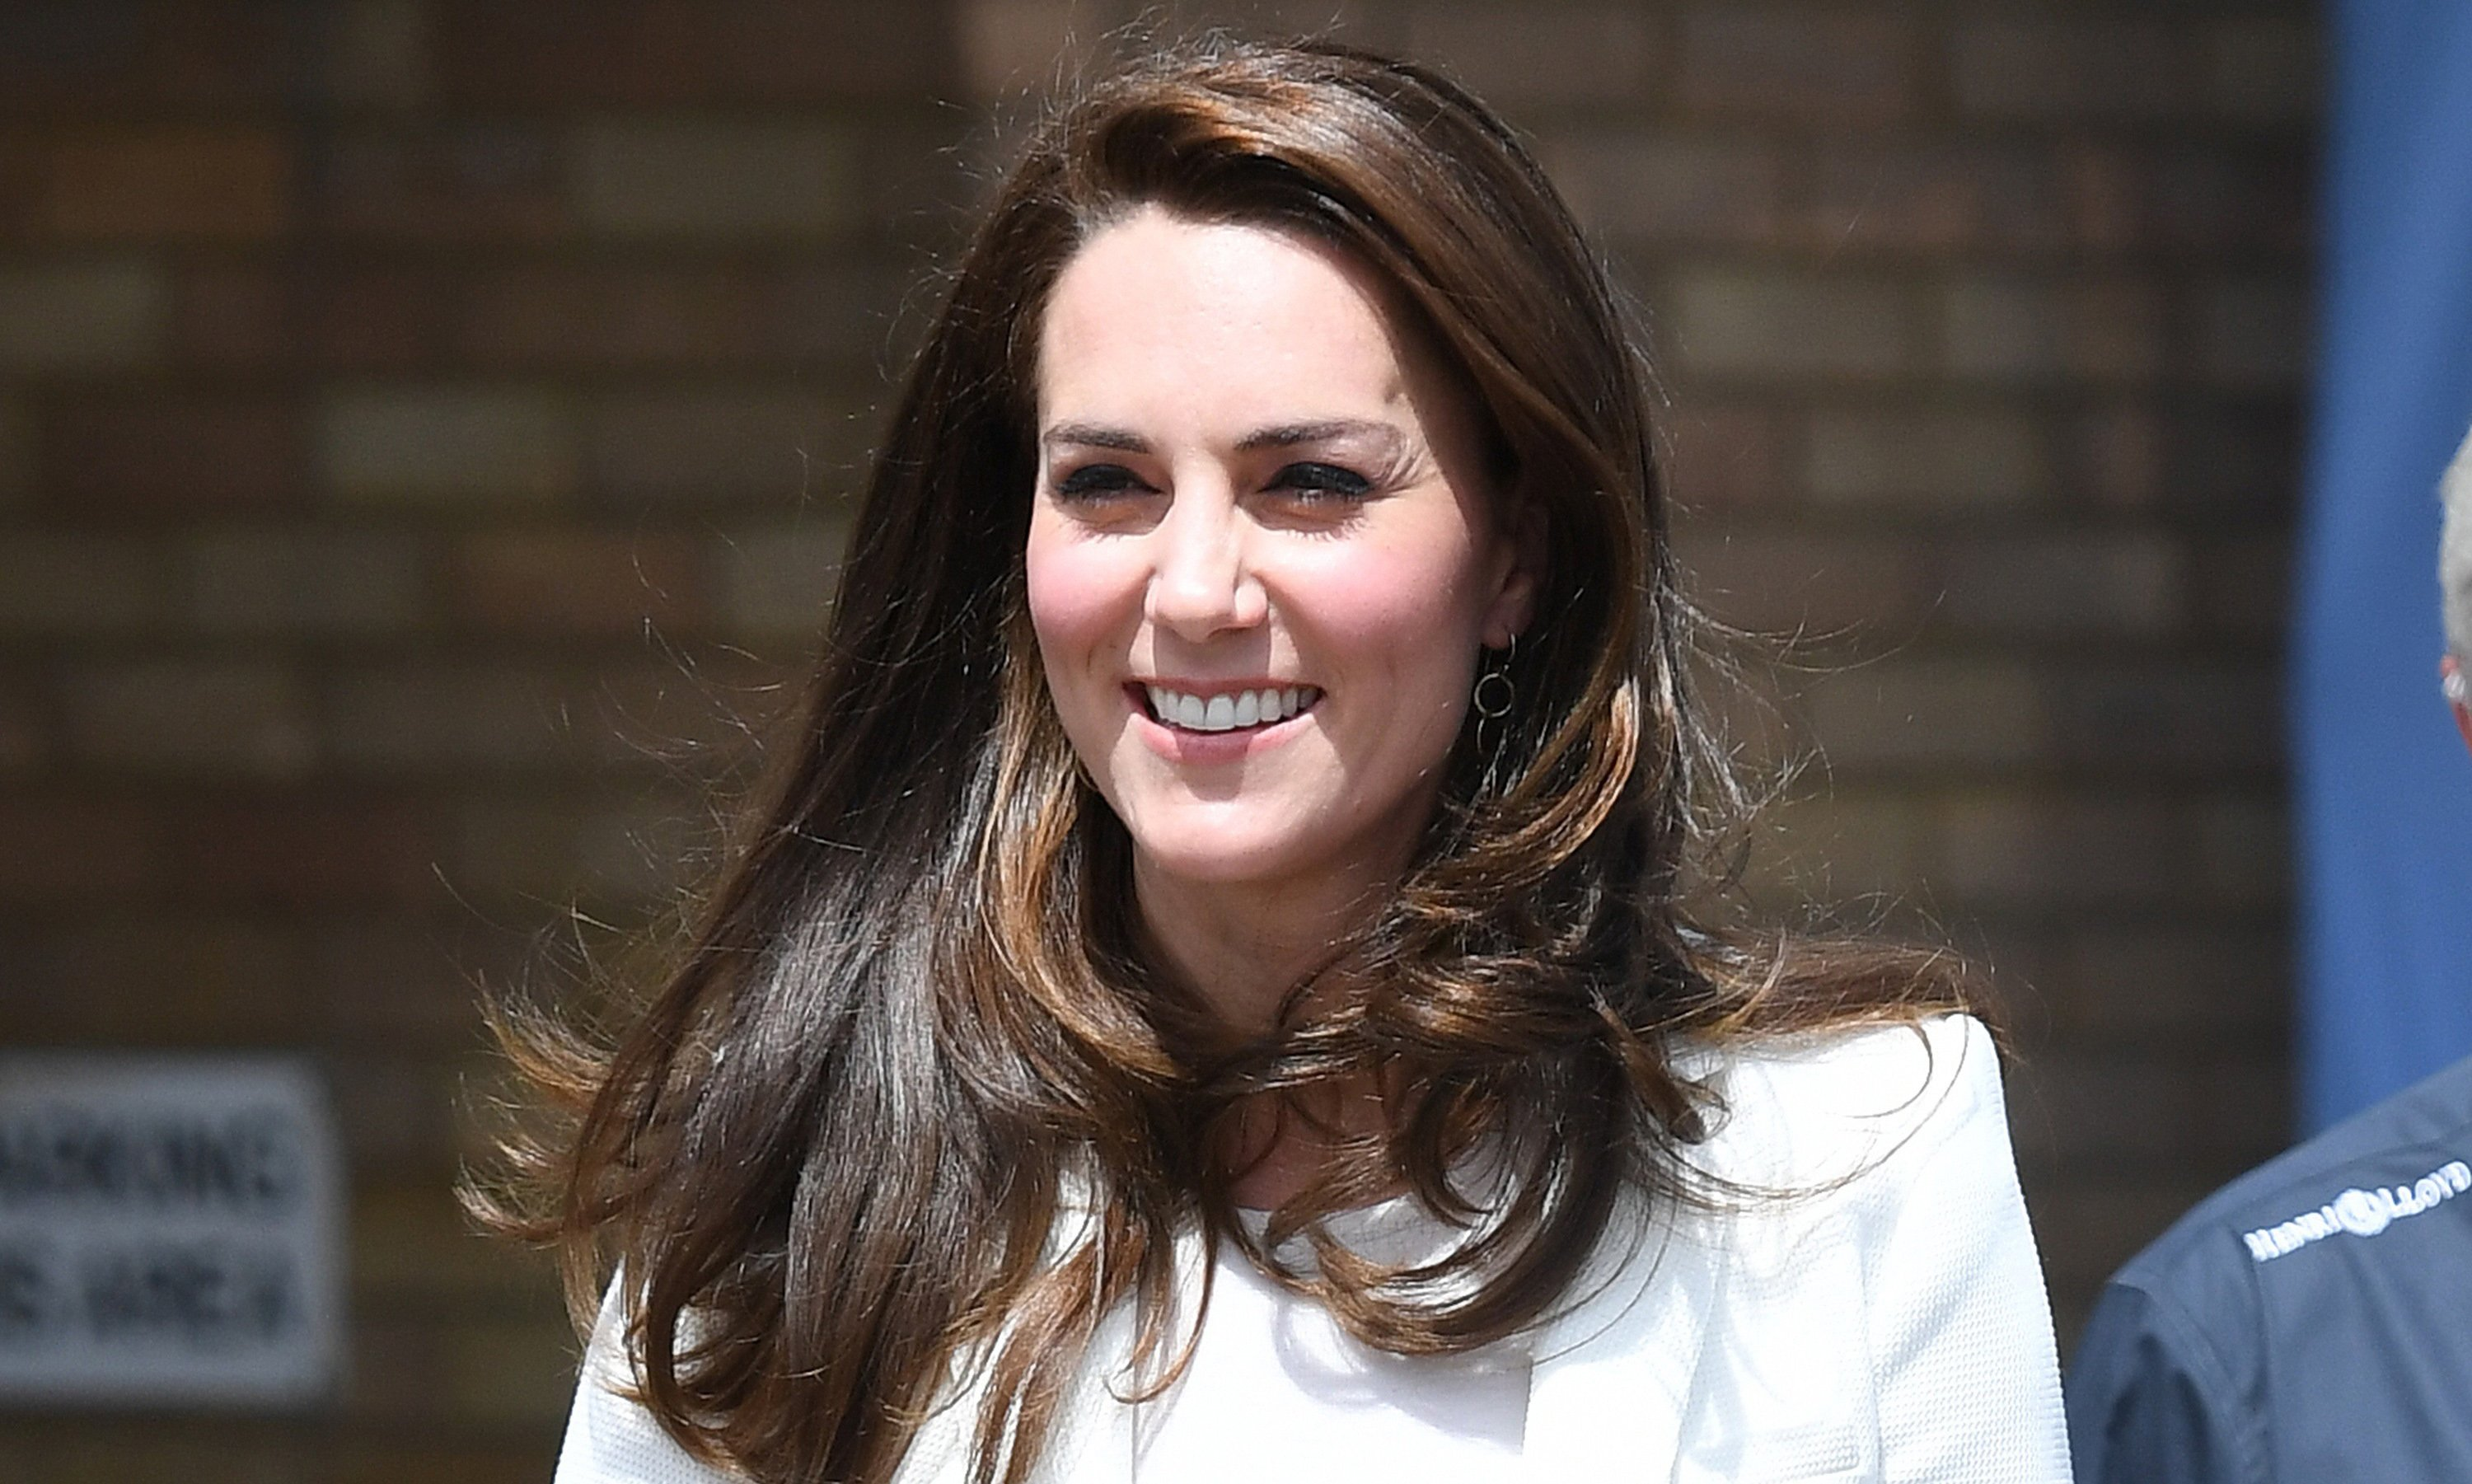 The real reason Kate Middleton's not wearing her engagement ring